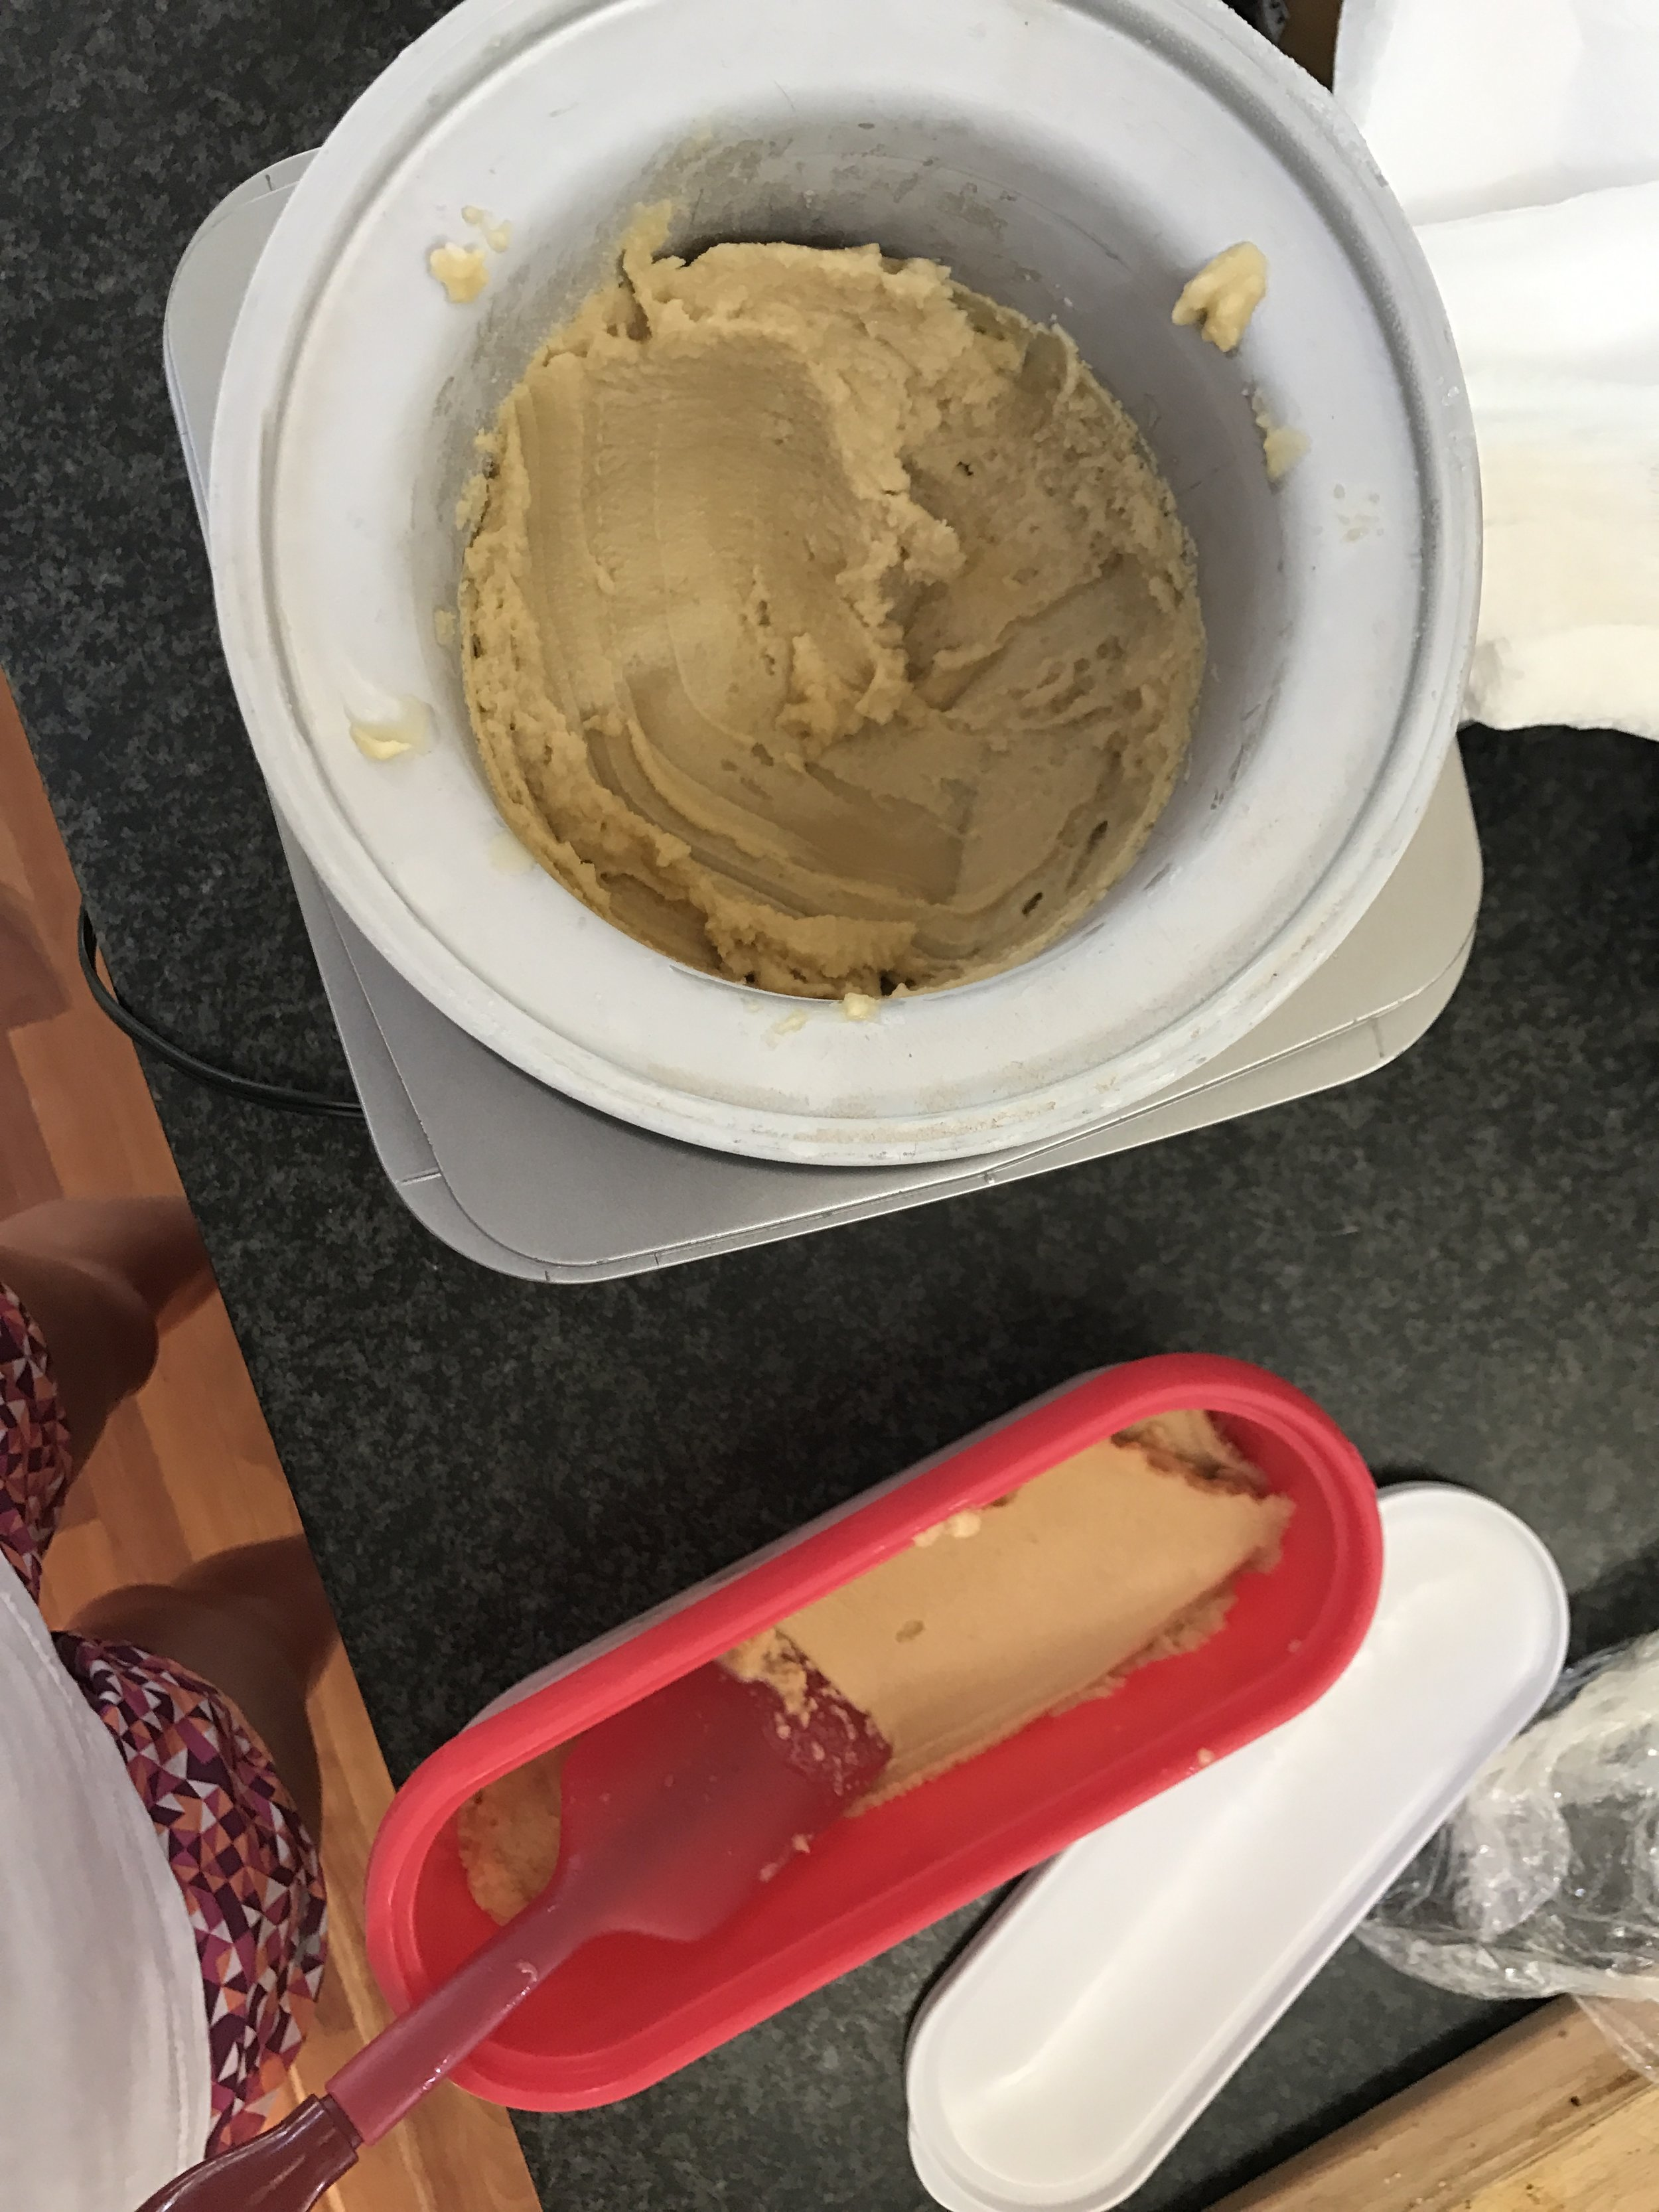 The next day... - Churn in the ice cream maker for 35 minutes and then freeze. Serve with more honey, strawberries, or even edible flowers!    '